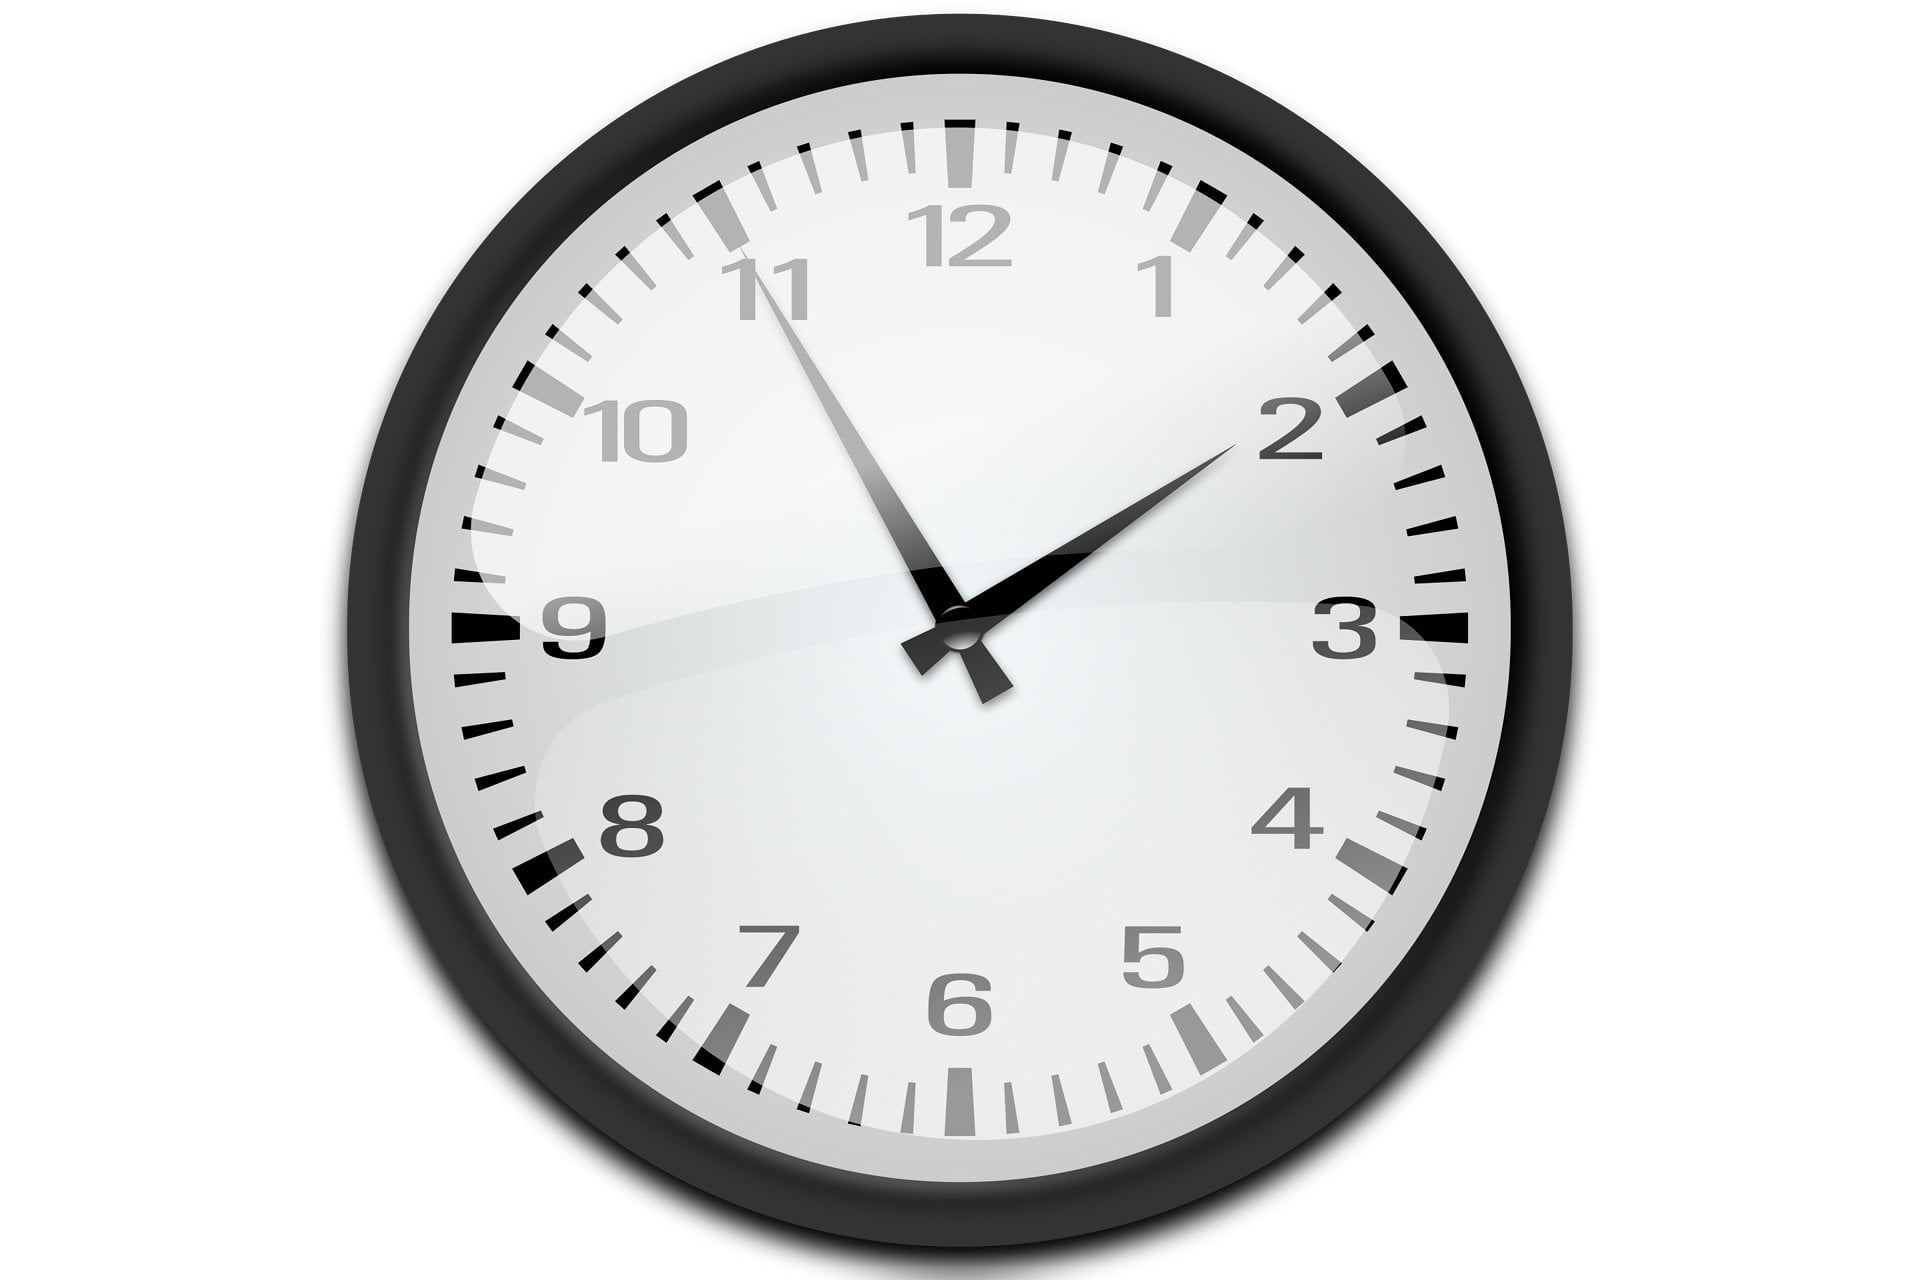 Uk time zone